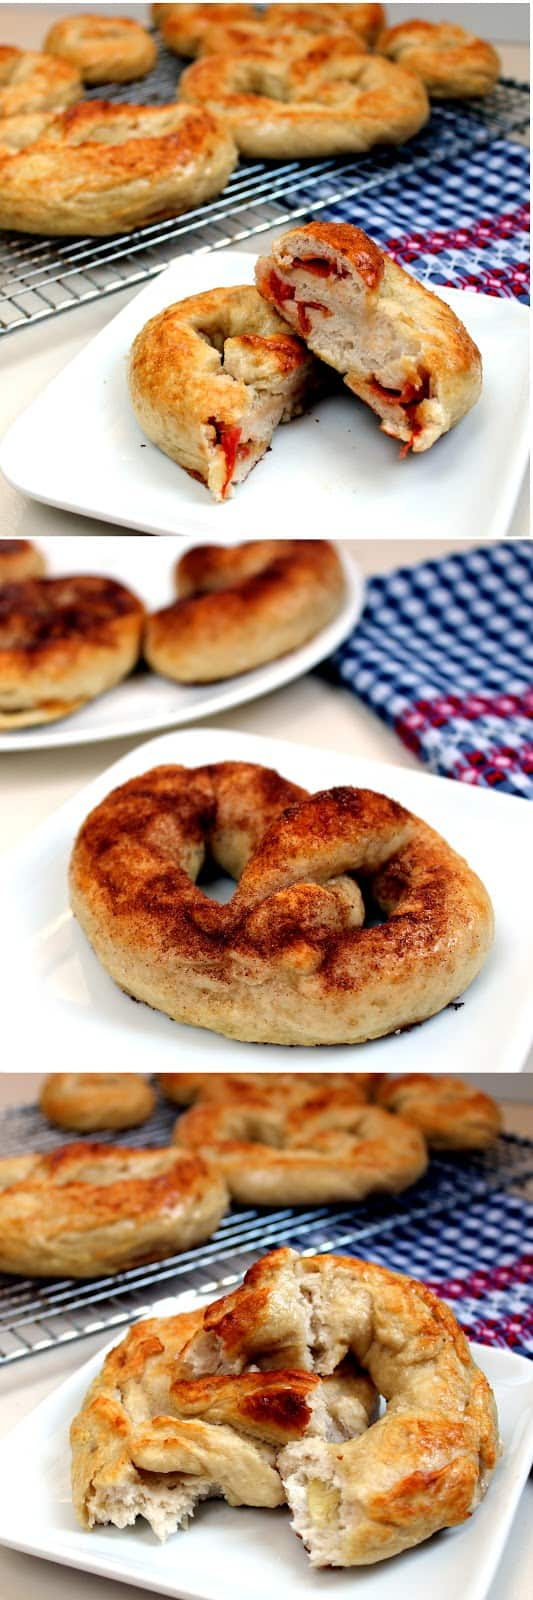 Pretzels 3 ways: Some of my favorite are pizza (sauce, mozzarella, and pepperoni), cream cheese topped with cinnamon sugar or spinach artichoke dip